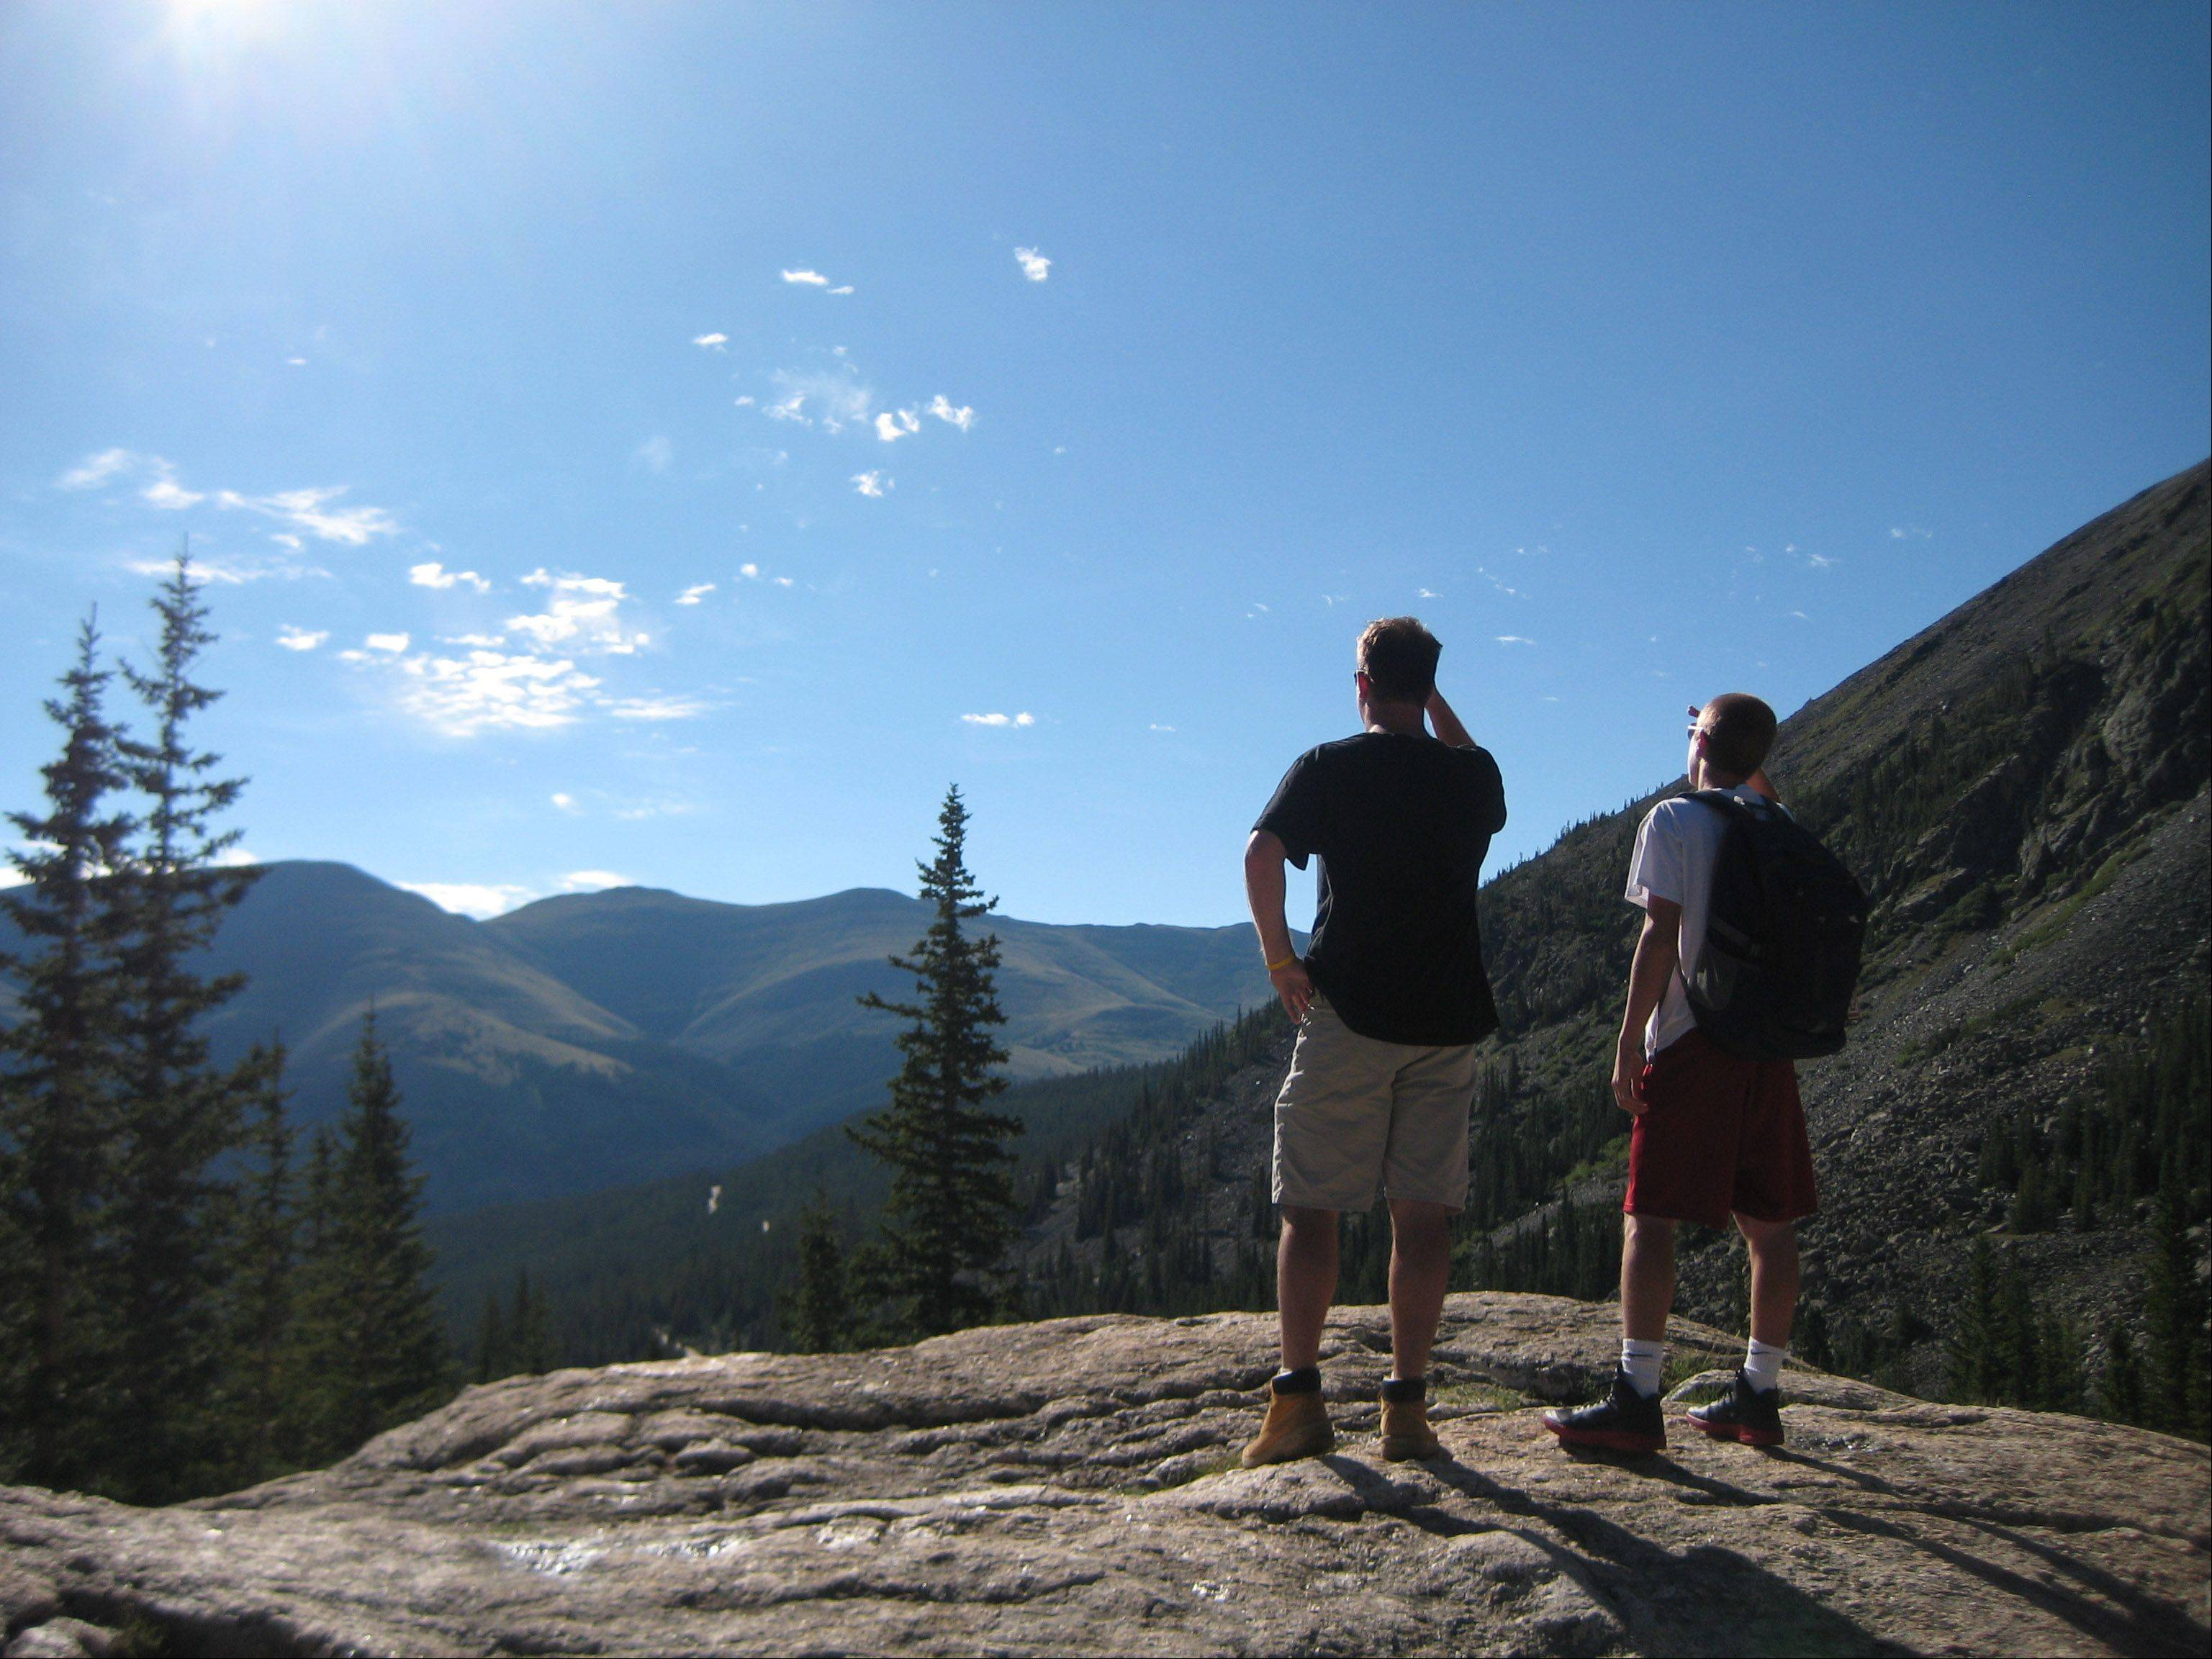 This picture was taken during our 2012 summer vacation to Breckenridge, Colorado while hiking one of their beautiful trails. My sons Scott and Keith Hedges are in the picture.